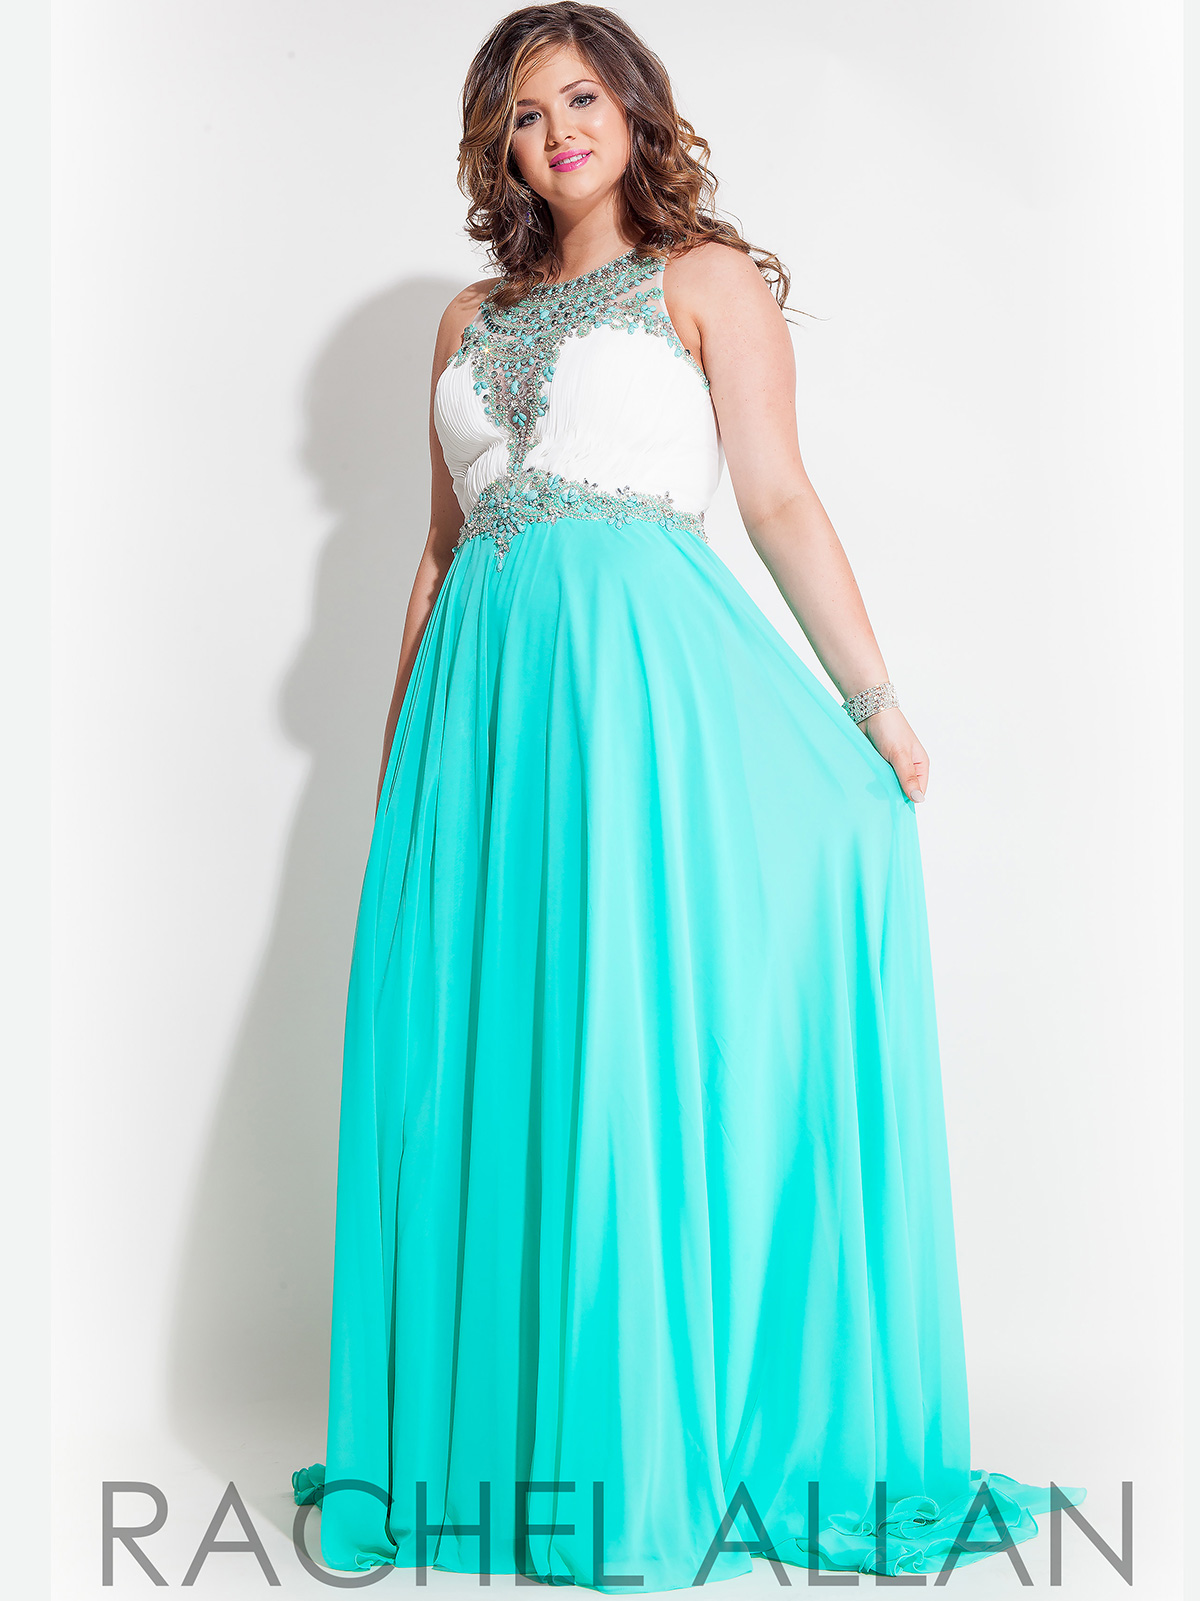 Dillards junior plus size prom dresses - Fashion dresses